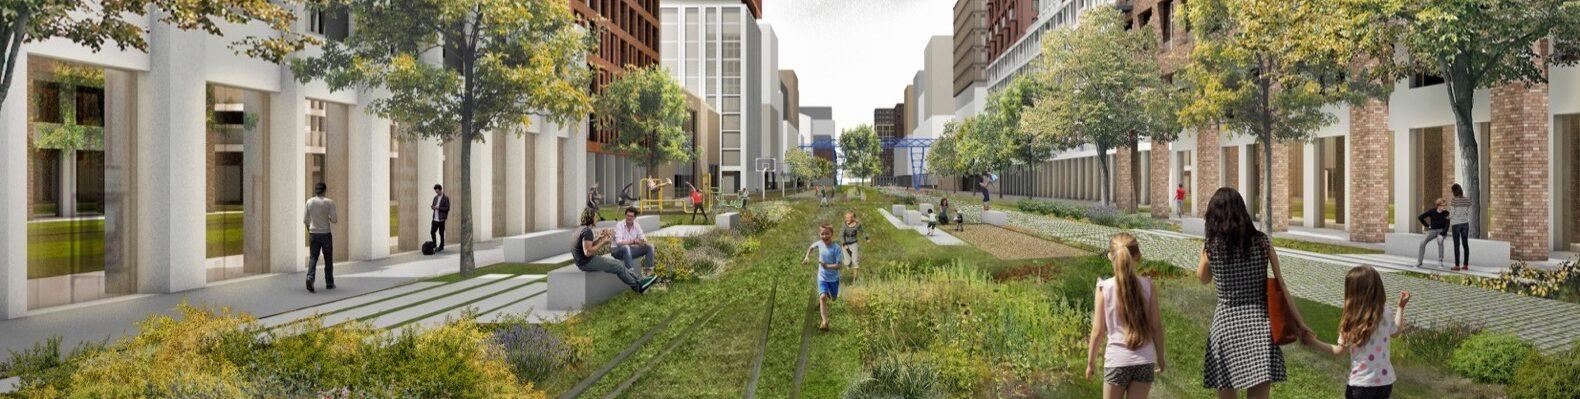 rendering of large linear park covered in grass